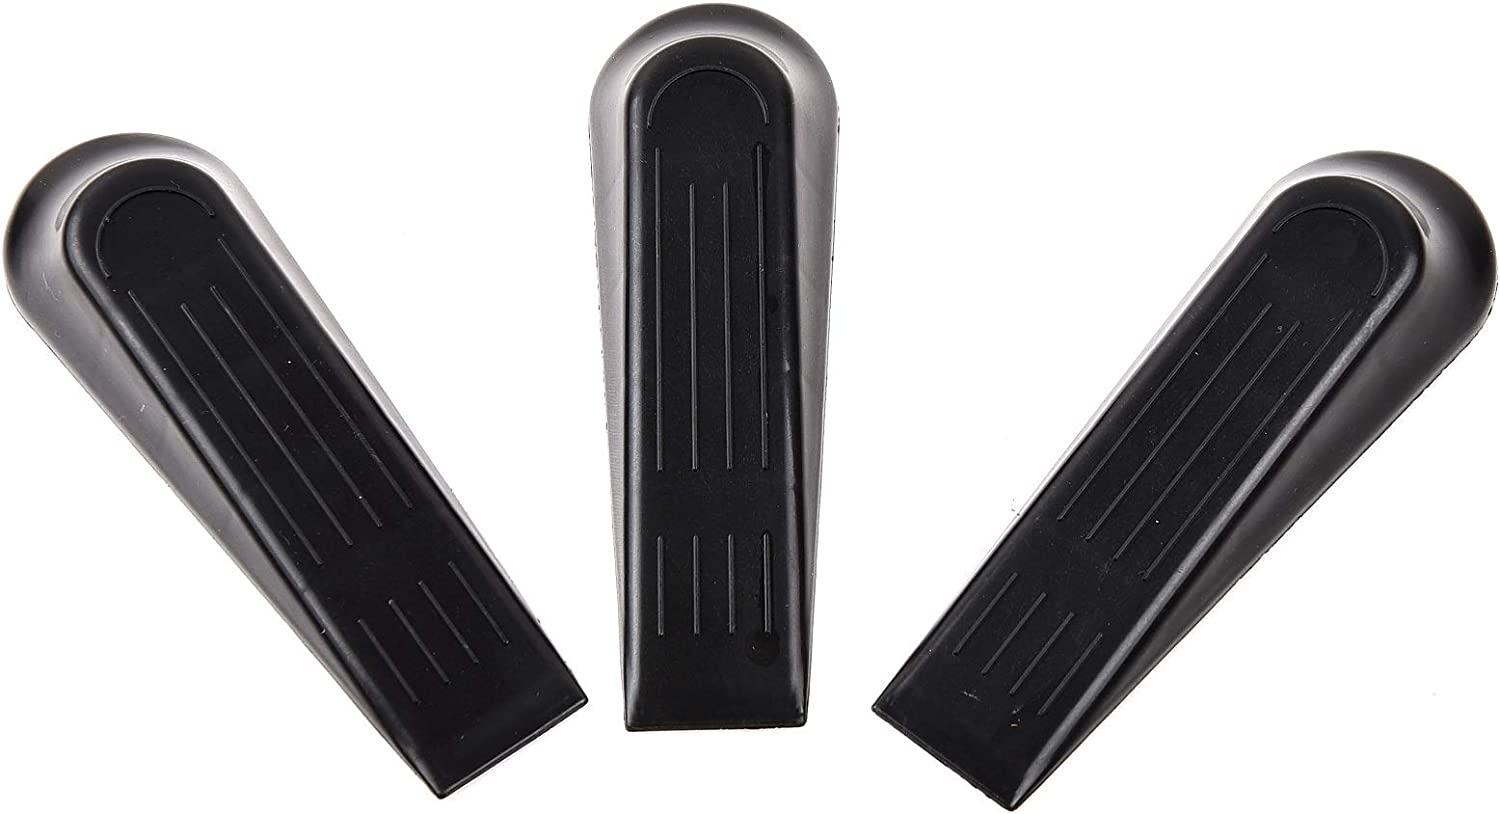 Black SIGO Door Stopper Rubber Door Stop Works on All Floor Surfaces 3 Pack Hardwood or Tile Prevent The Lock-Outs Control The Size of The Door Gaps and Great for Carpet